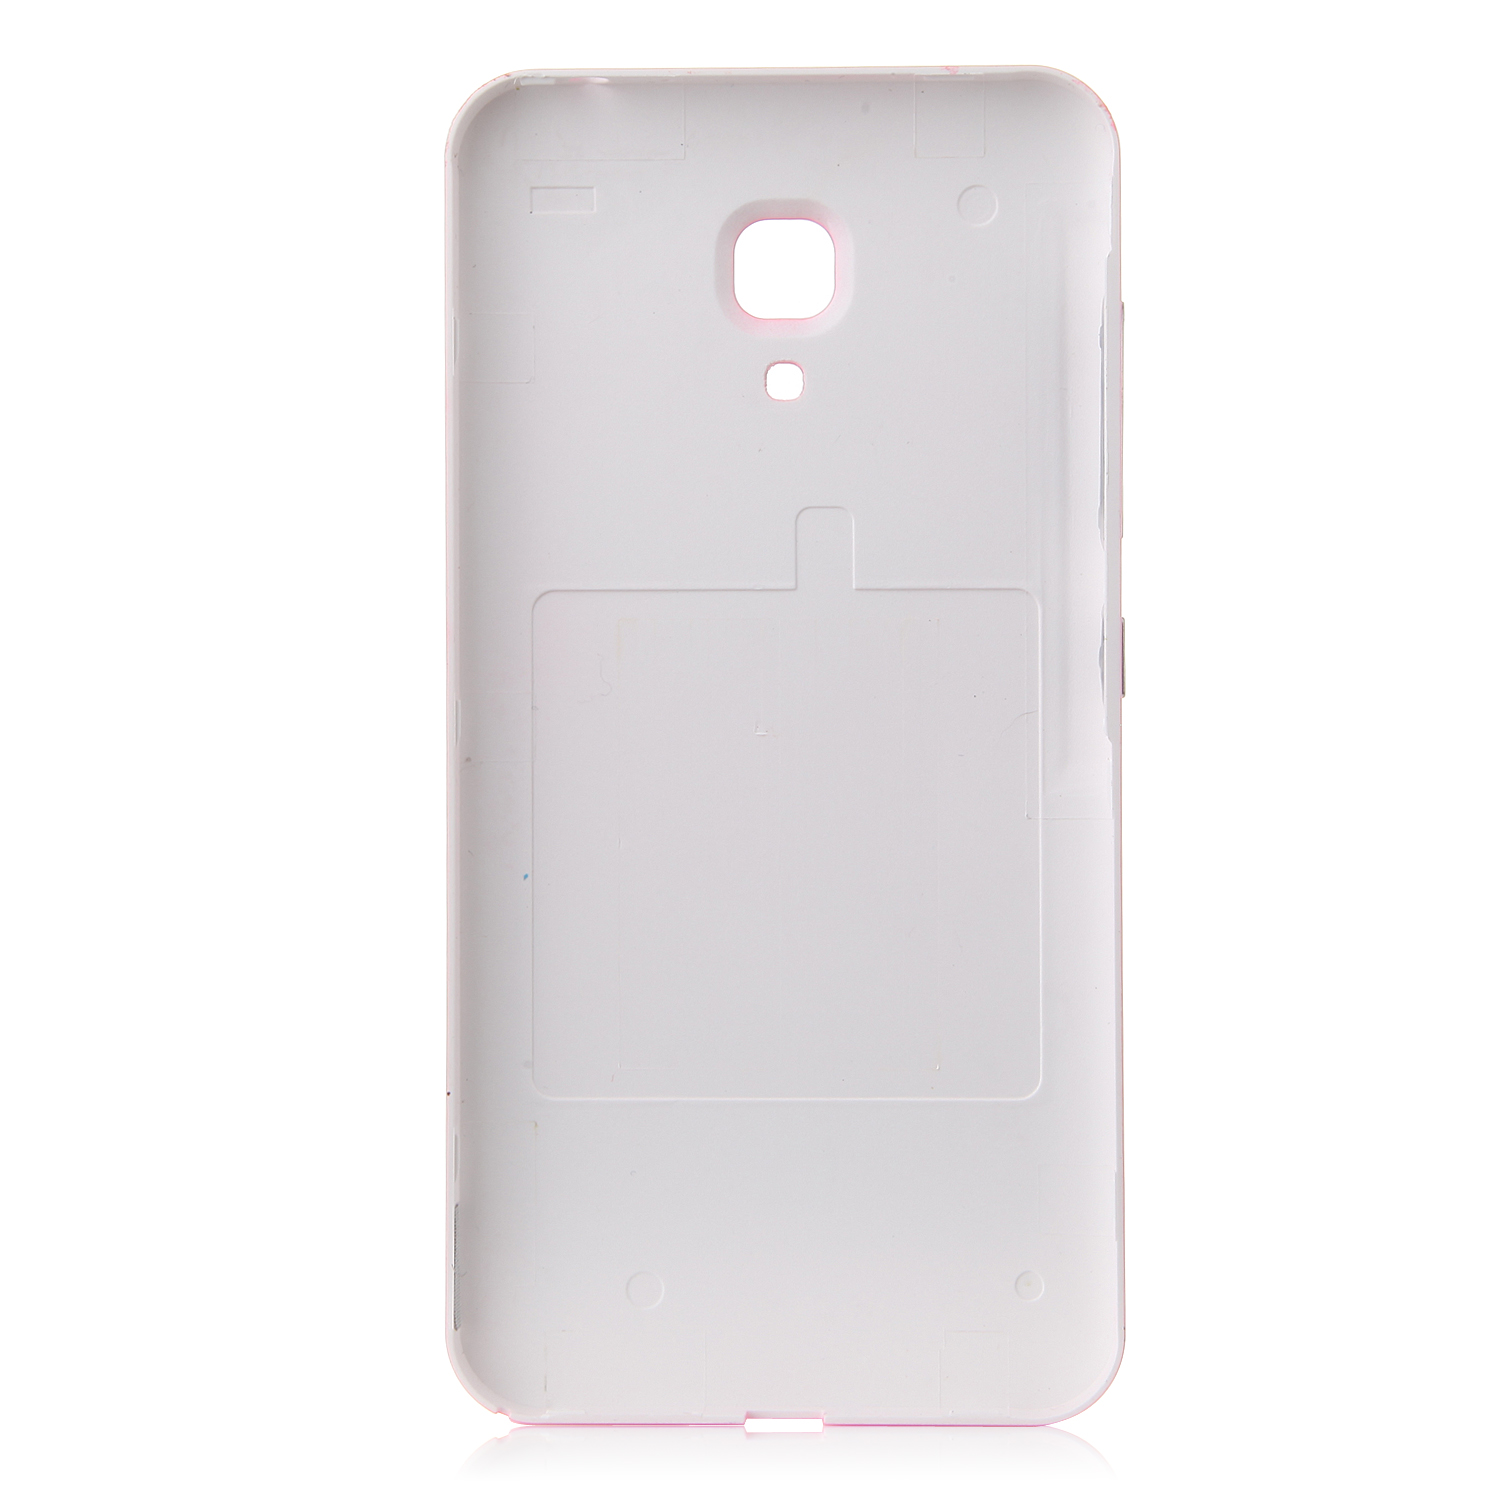 Replacement Battery Cover Back Case for XIAOMI 2A Smartphone Pink